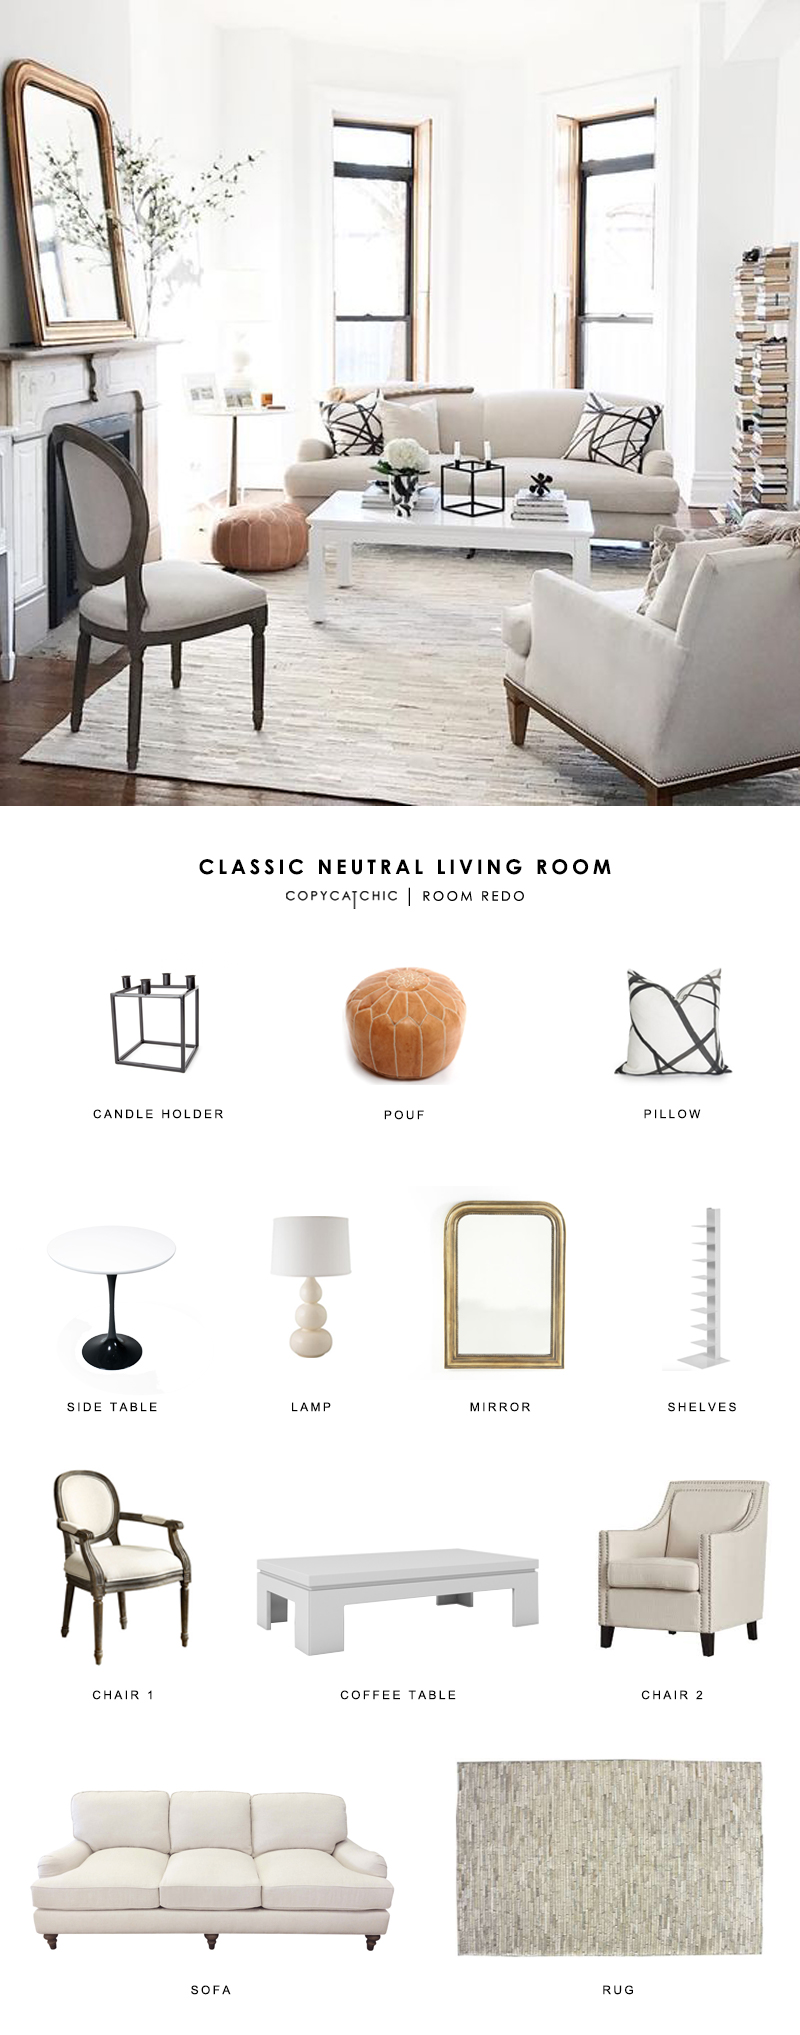 Copy Cat Chic Luxe Living For Less